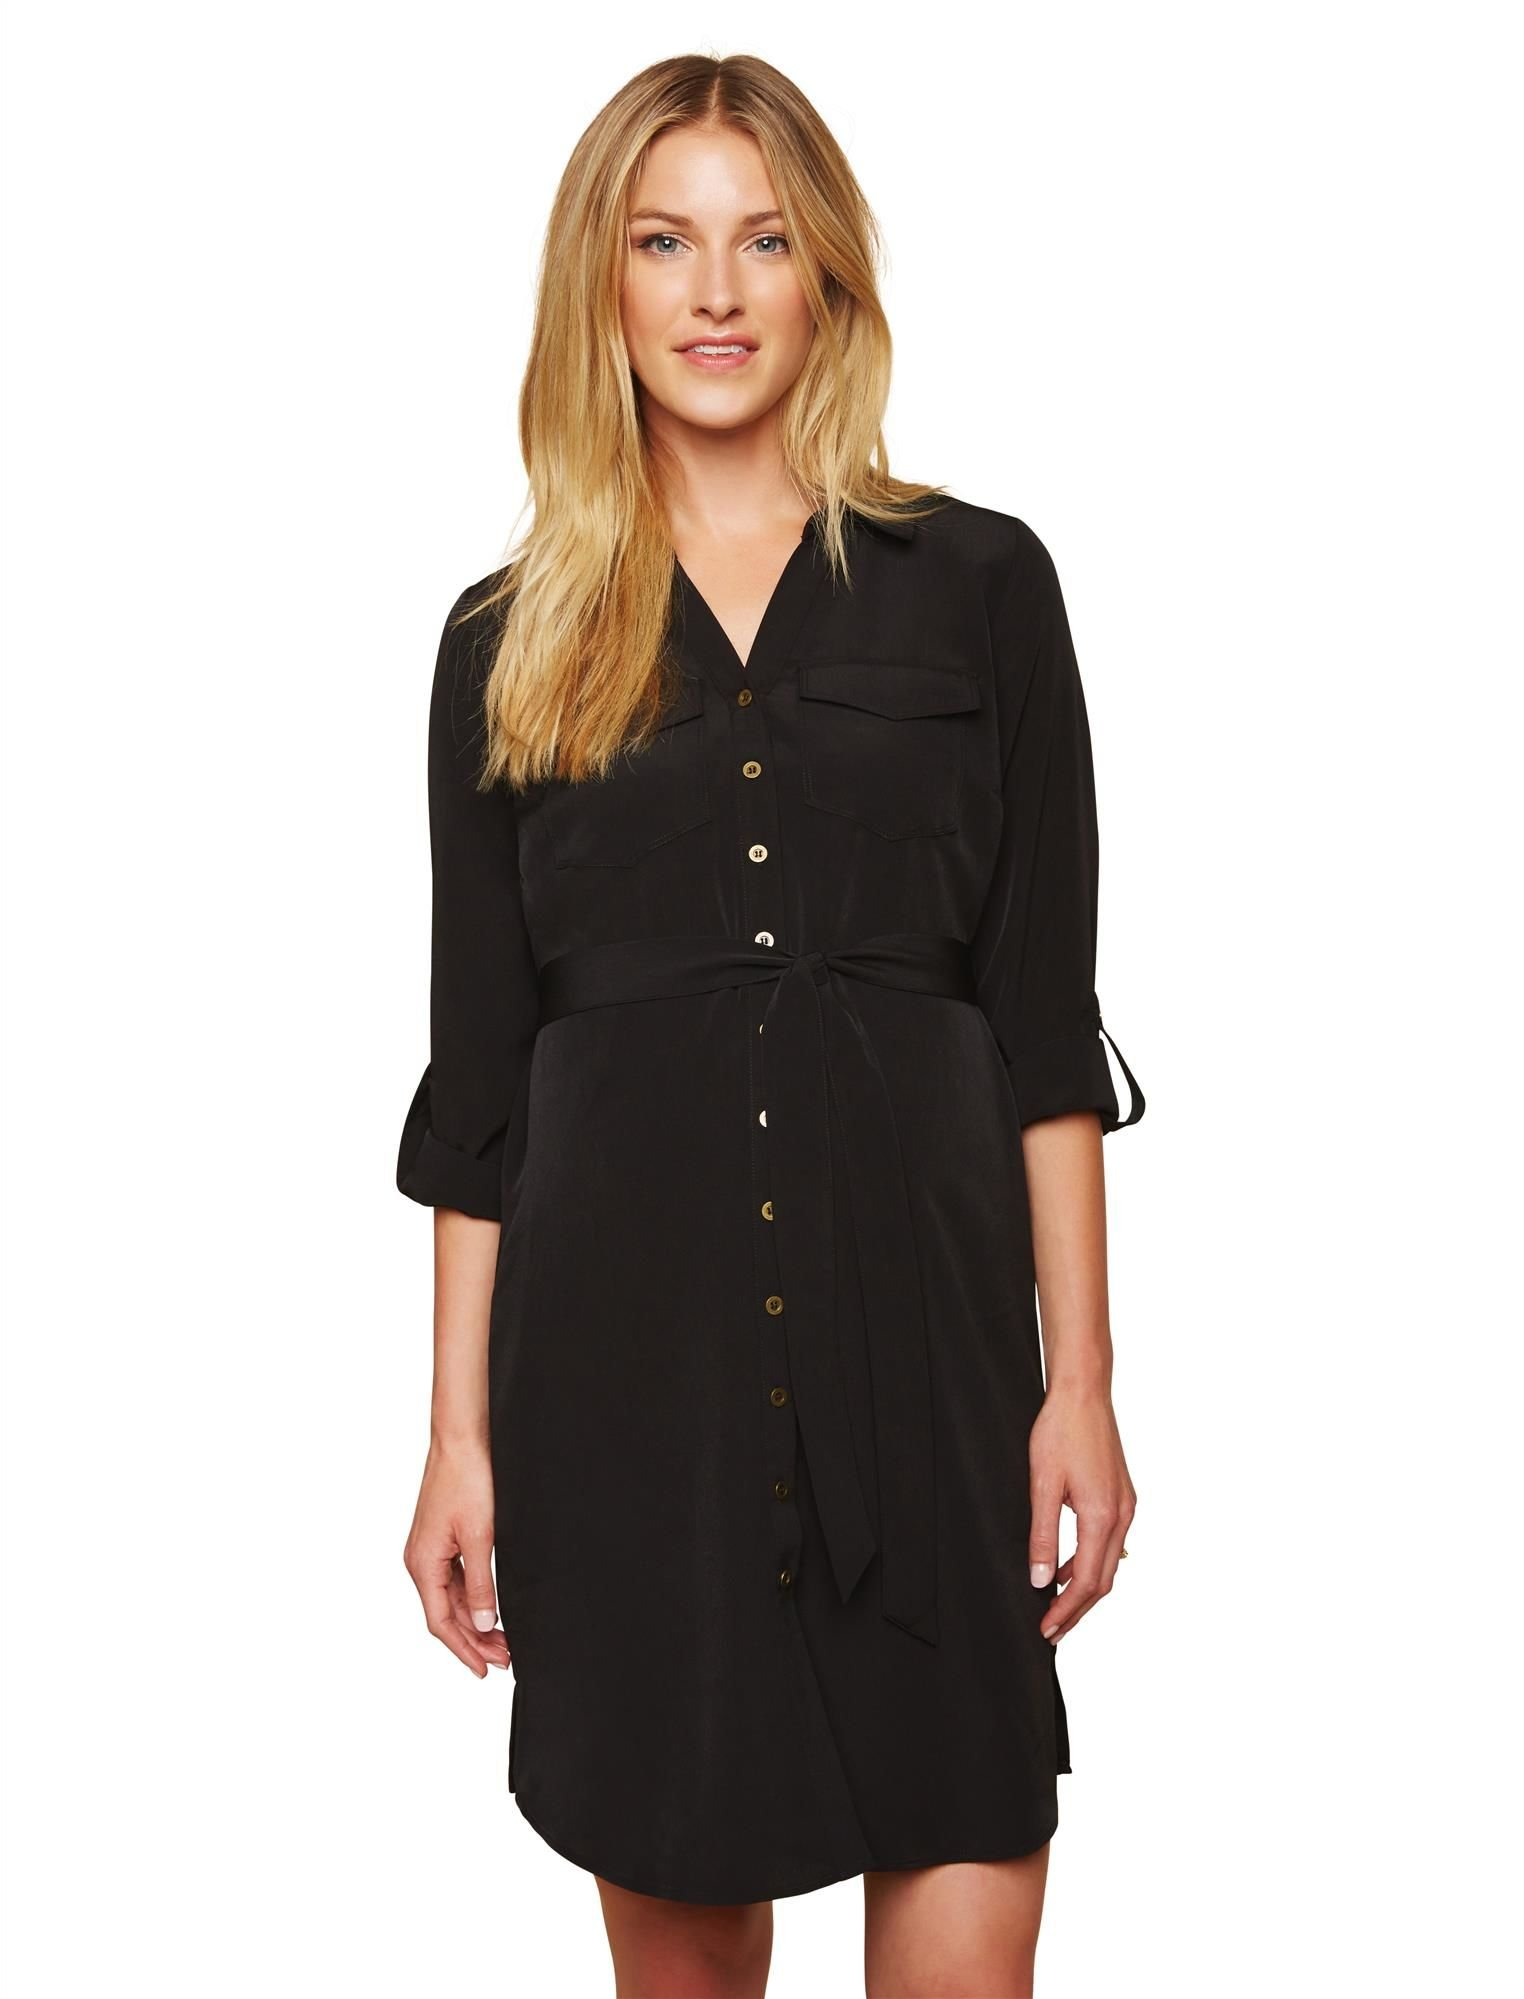 Motherhood Maternity Women's Collared Shirt Dress with Tie Detail, Black, Extra Large by Motherhood Maternity